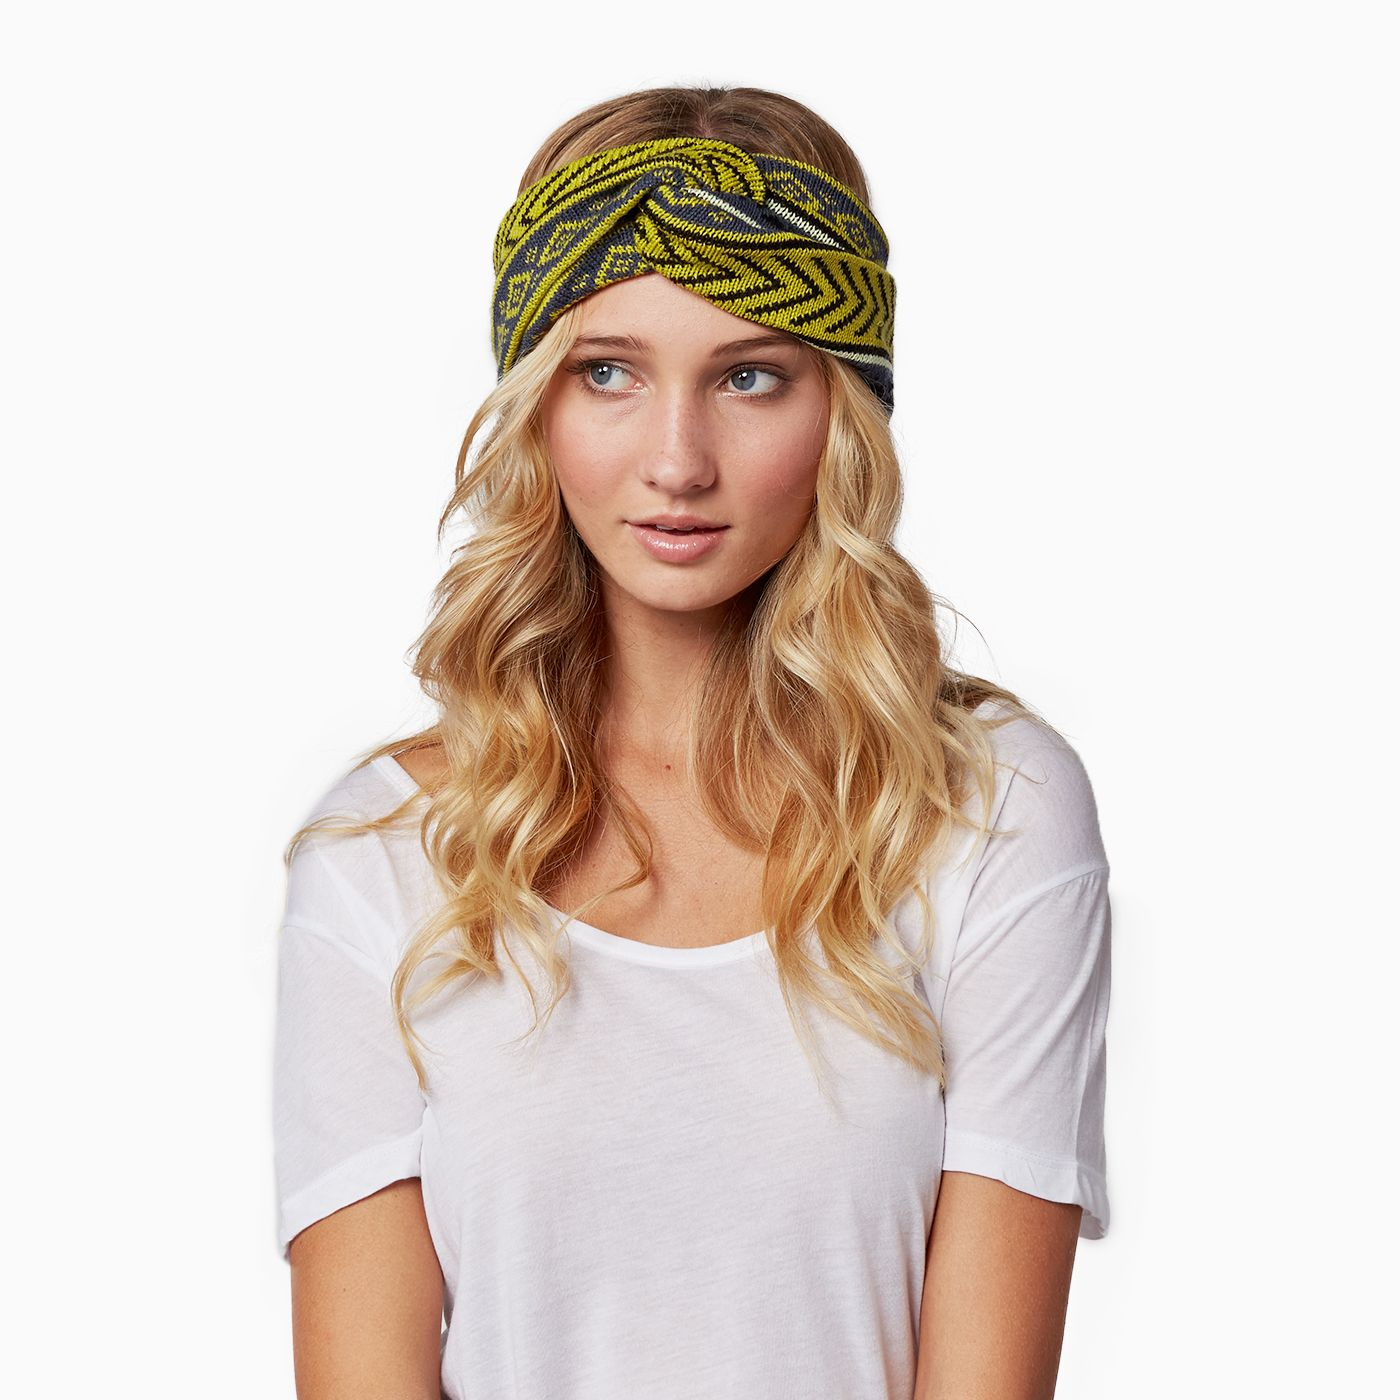 Make a statement this spring with our chunky knitted headband, 'the Arizona'. These bold designs will keep you ahead of the trend all year long. FEATURES:: Made in Peru 100% Acrylic Knotted Headband One Size Fits Most